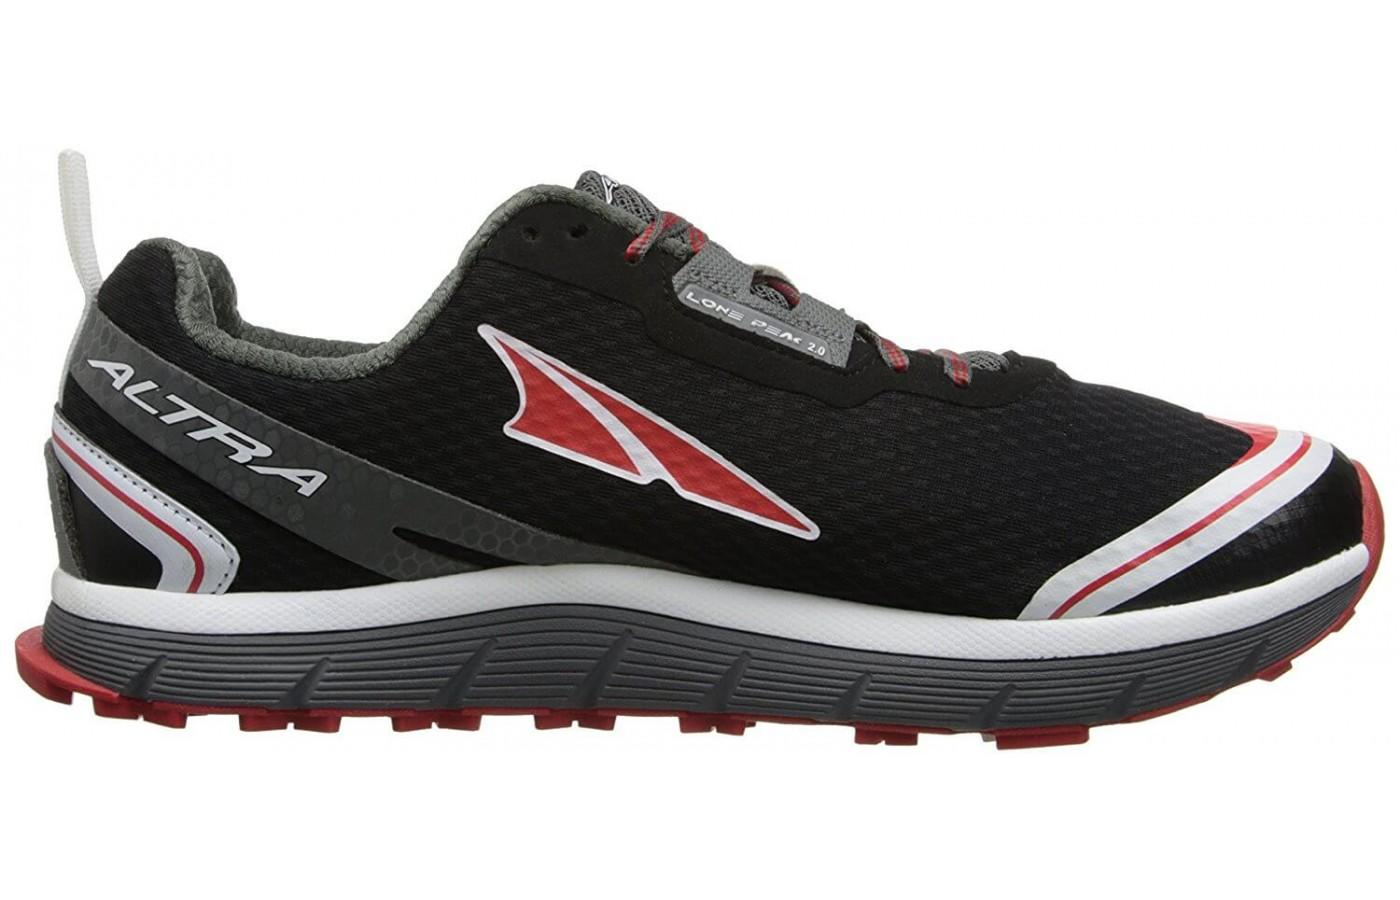 The Altra Peak 2.0 features a zero drop